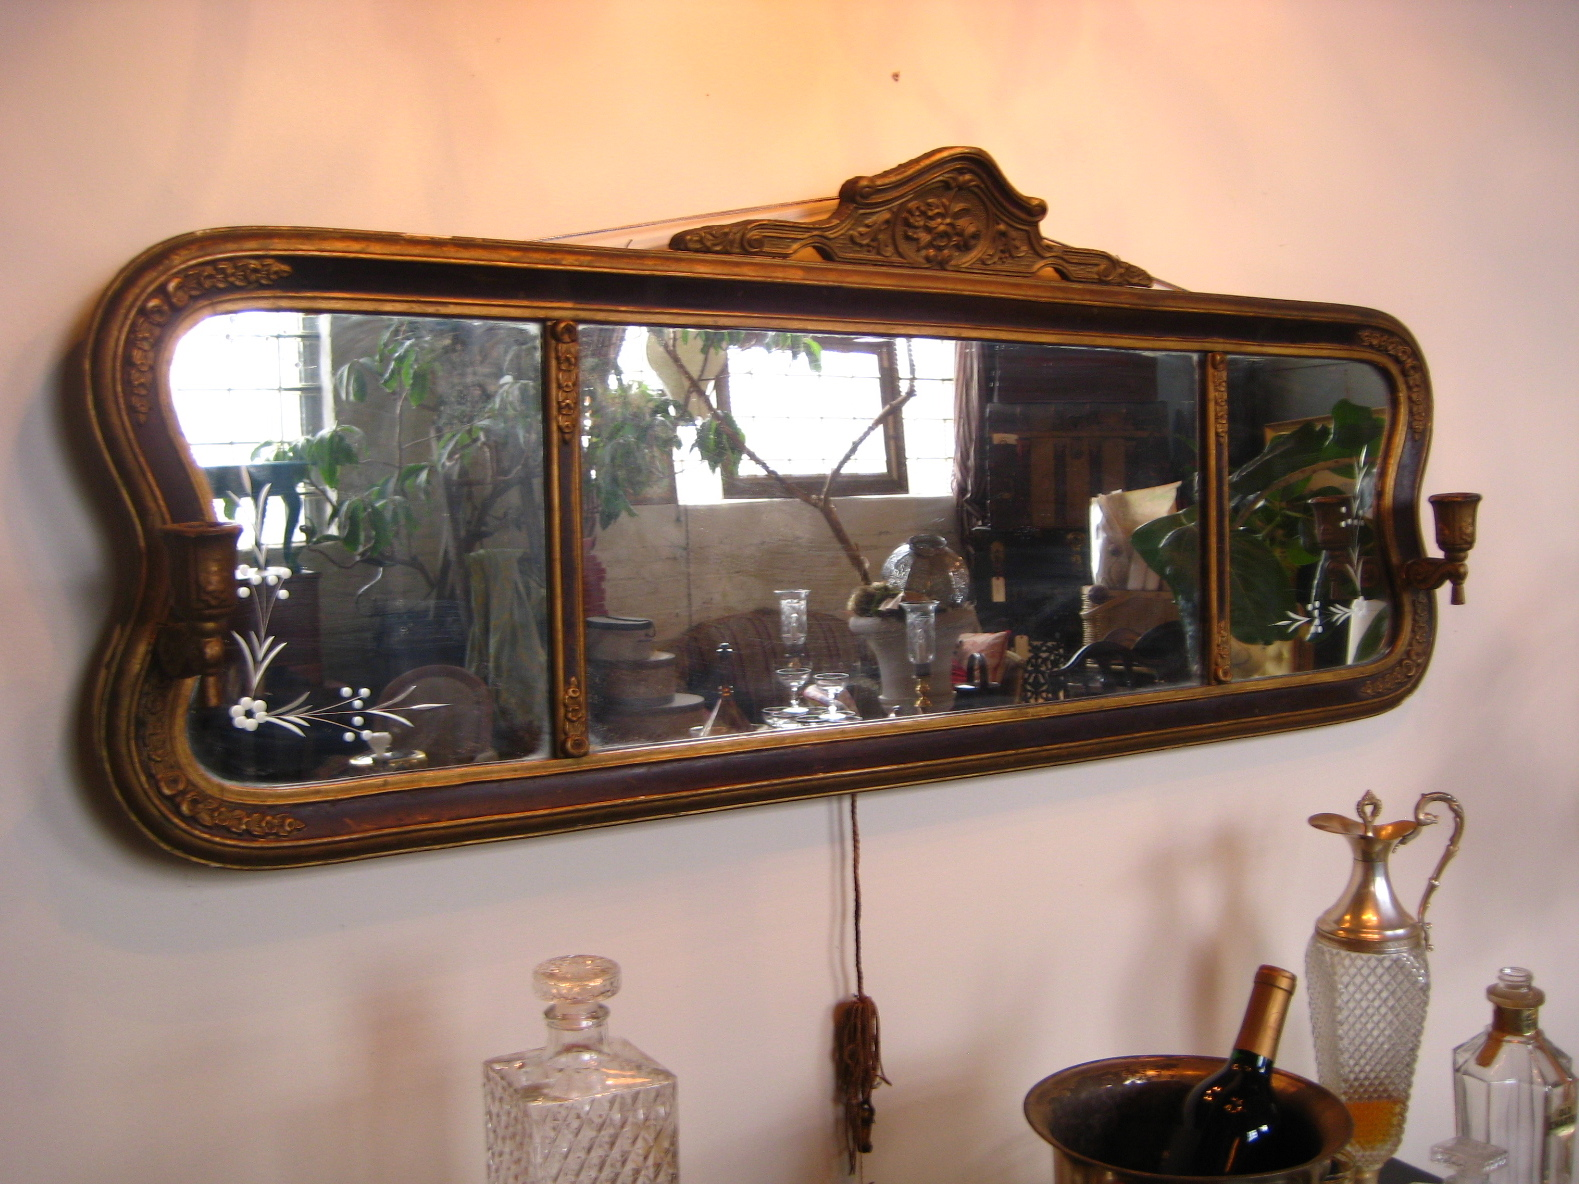 Rare Lovely Large Victorian Parlor Mirror With Etched Glass Adorned Two Candle Sconce Pairs Nicely Our French 75 Bar